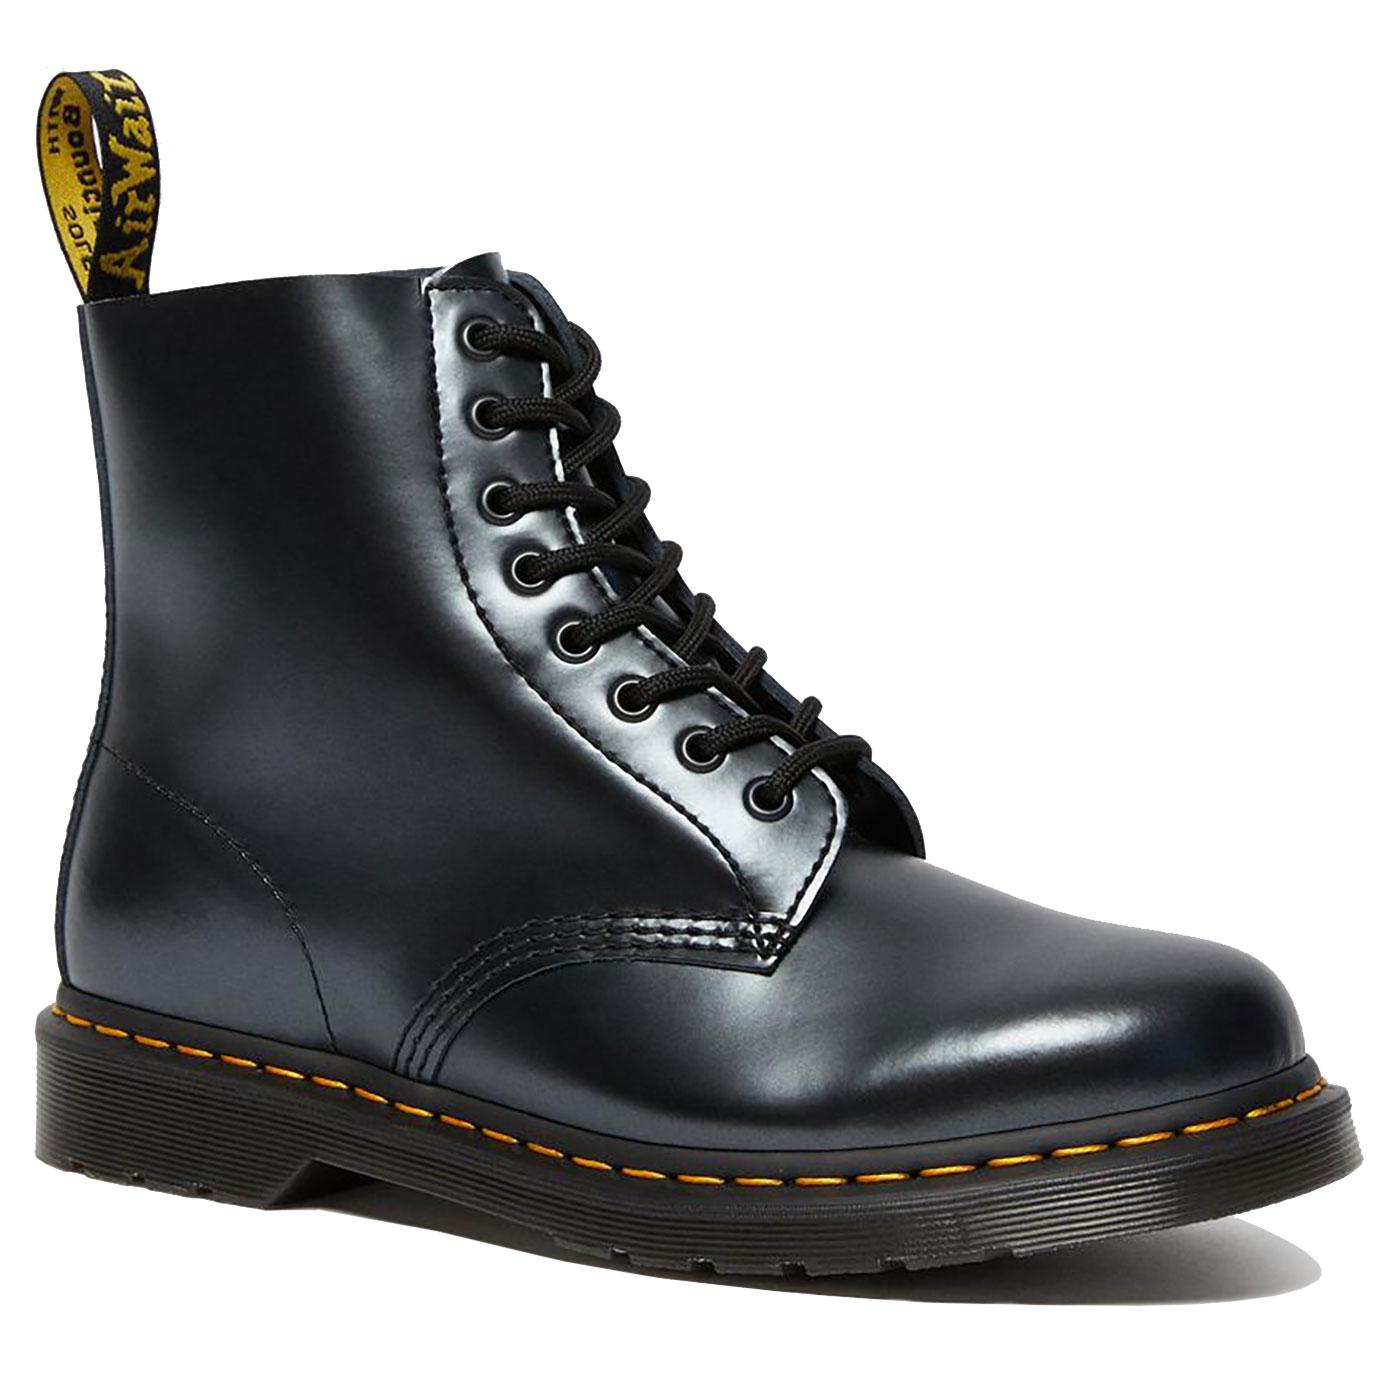 1460 Pascal DR MARTENS Womens Silver Chroma Boots